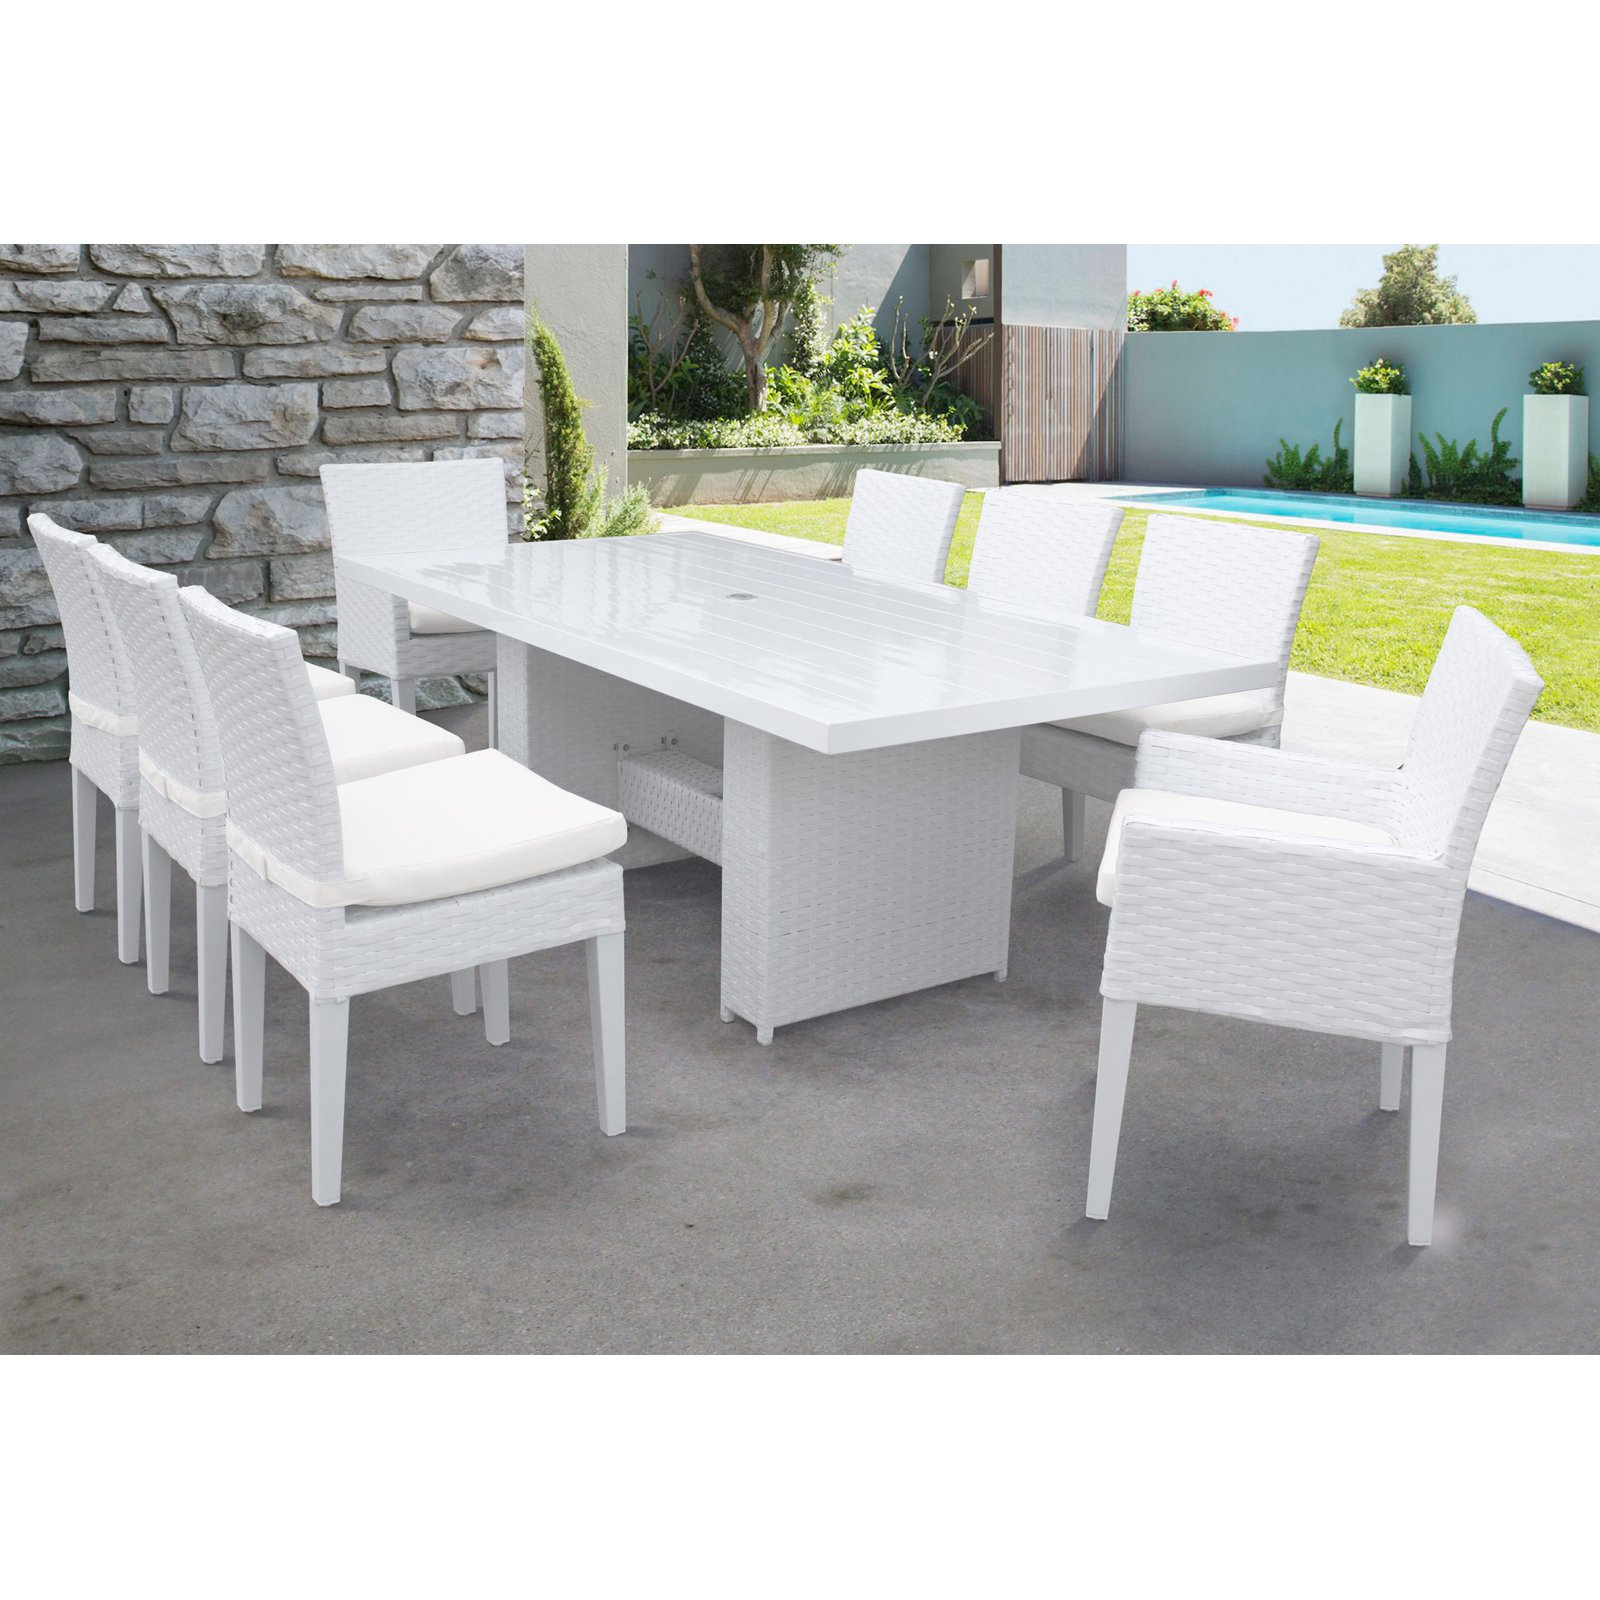 TK Classics Miami Wicker 9 Piece Patio Dining Set